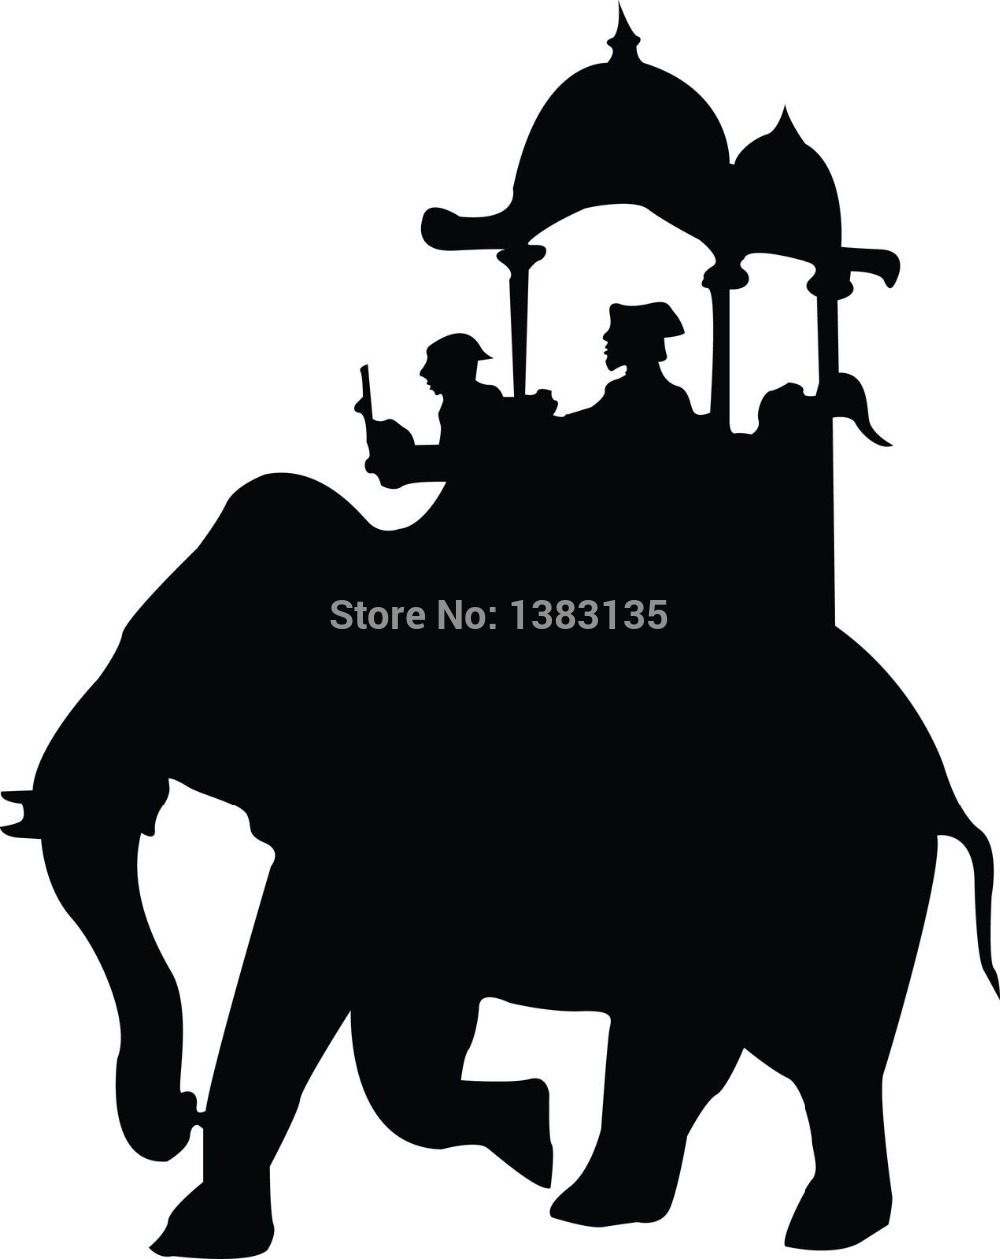 Indians clipart silhouette. Indian images at getdrawings